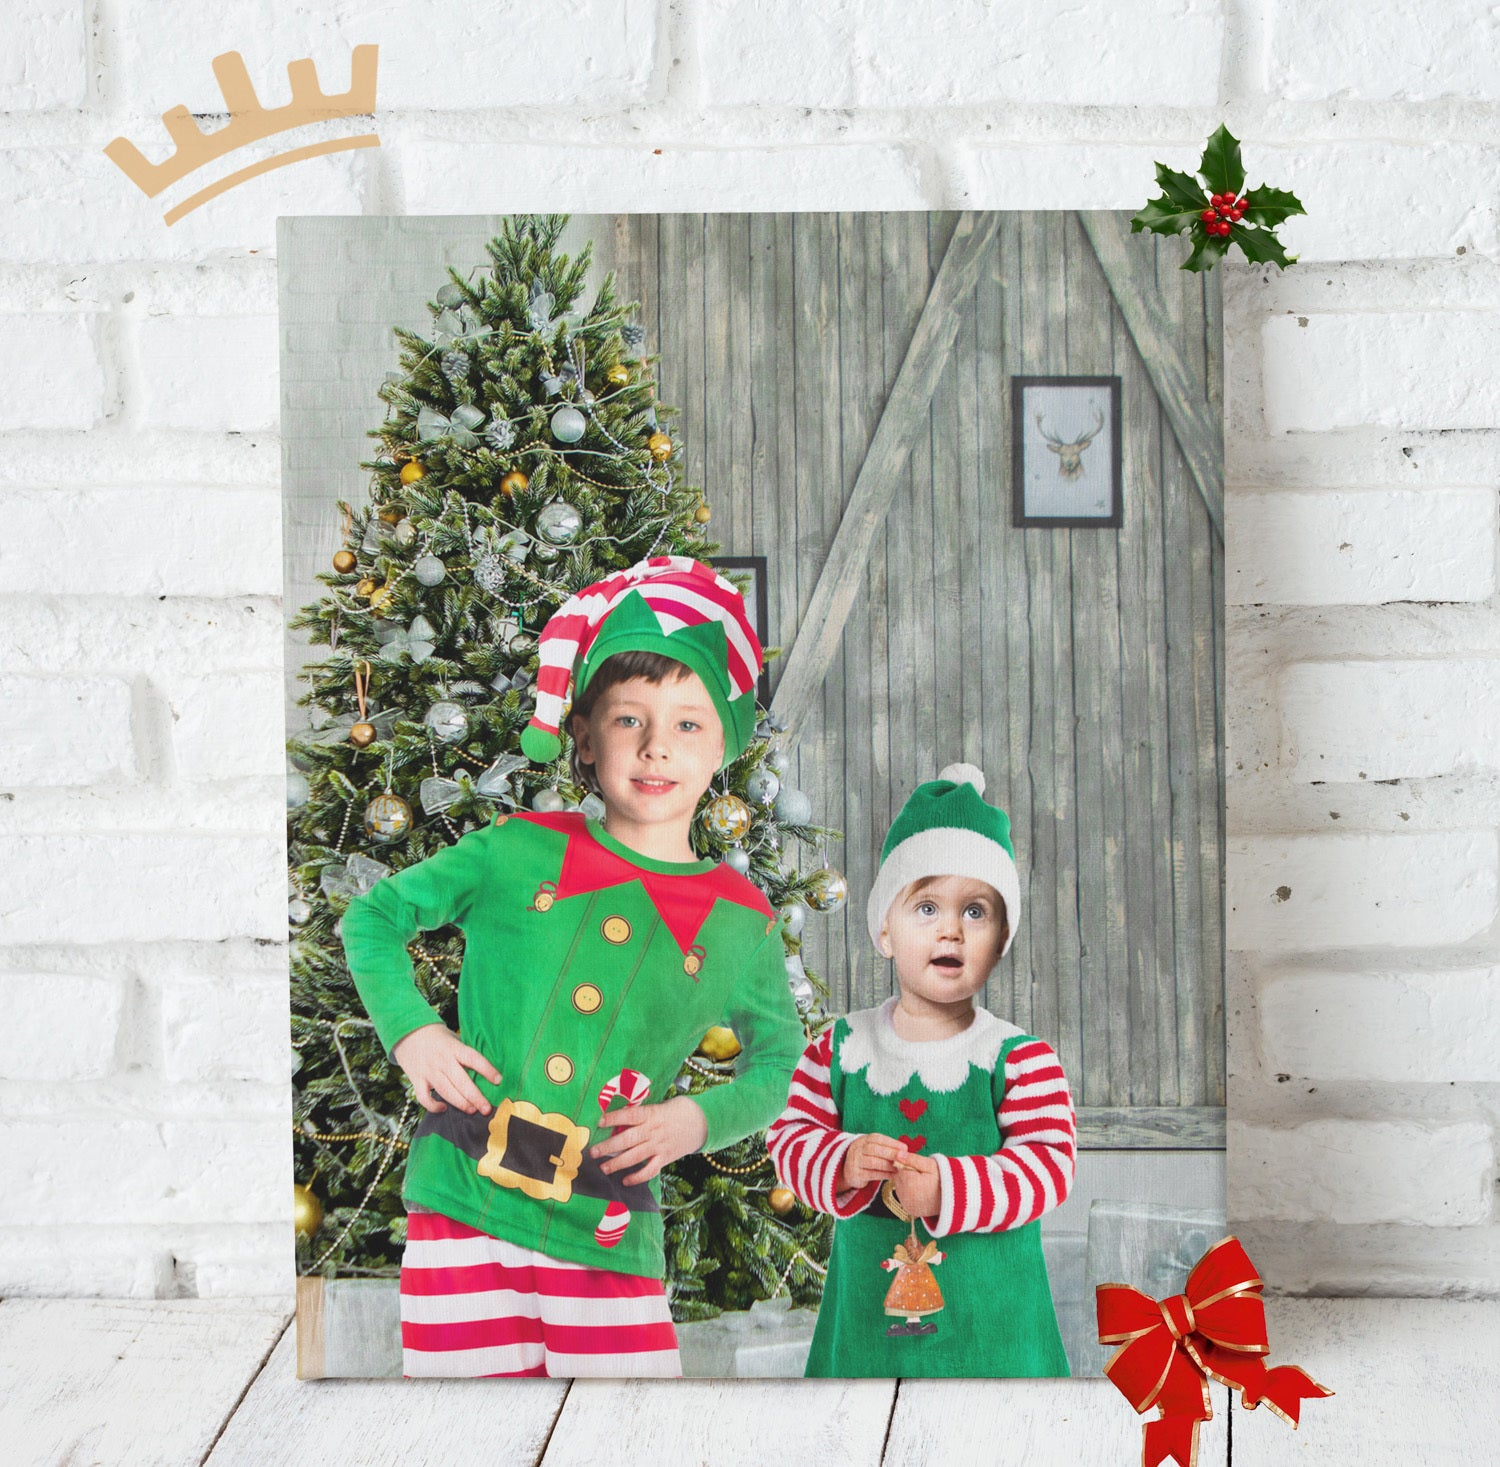 The Christmas Elves - Custom Portrait